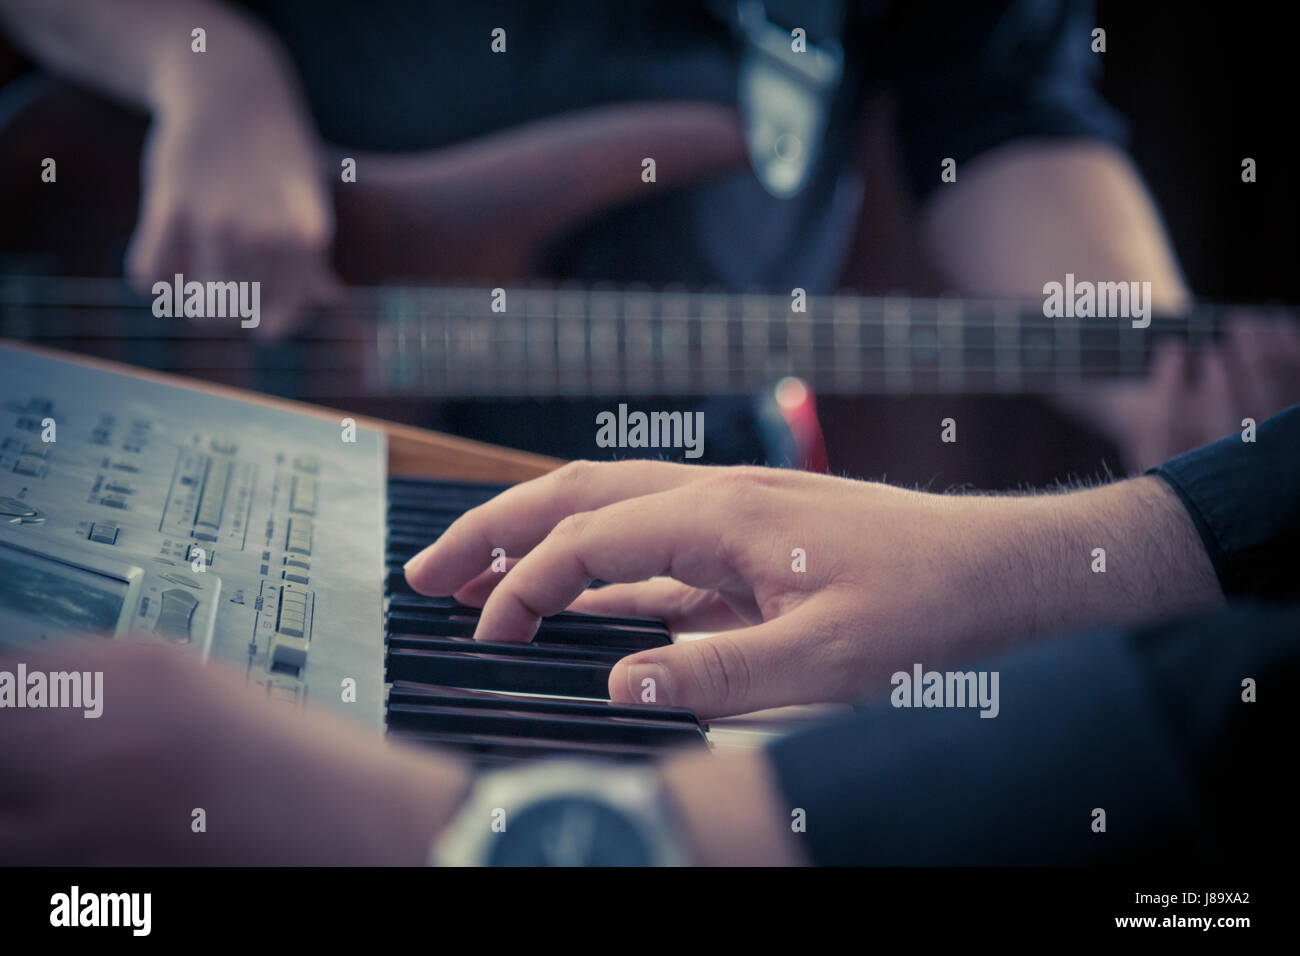 Hand playing music keyboard and bass guitar player in the background. Detail form a concert. - Stock Image